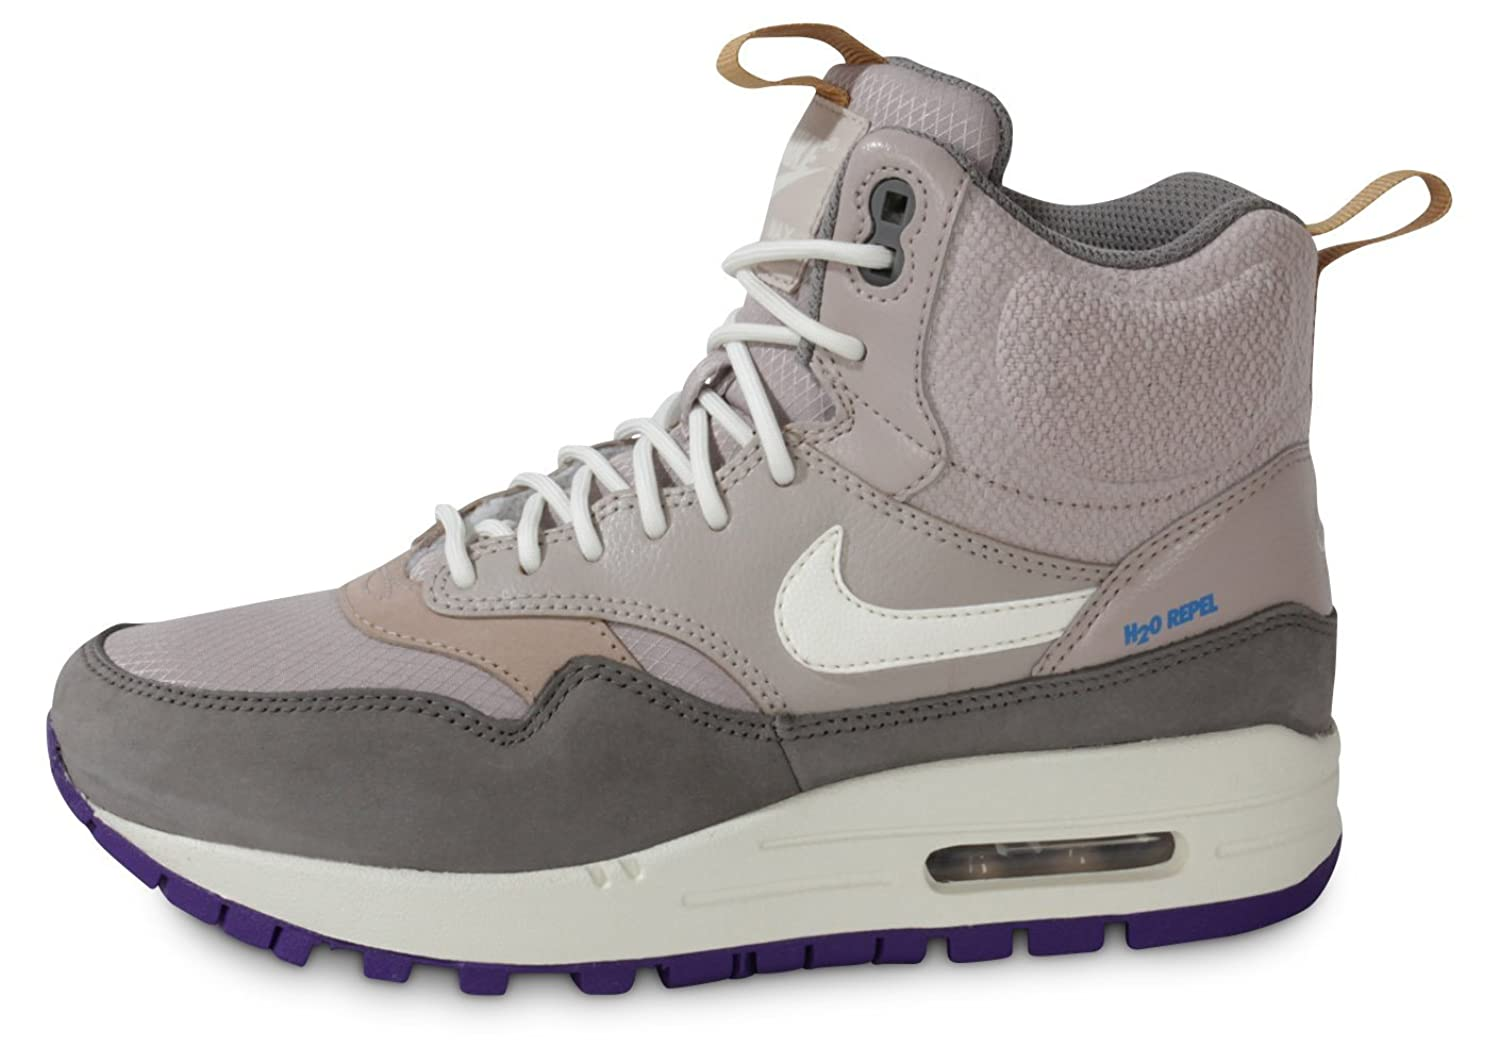 Amazoncom Nike WMNS AIR MAX 1 MID SNKRBT WOMENS Sneakers 685267002 Basketball